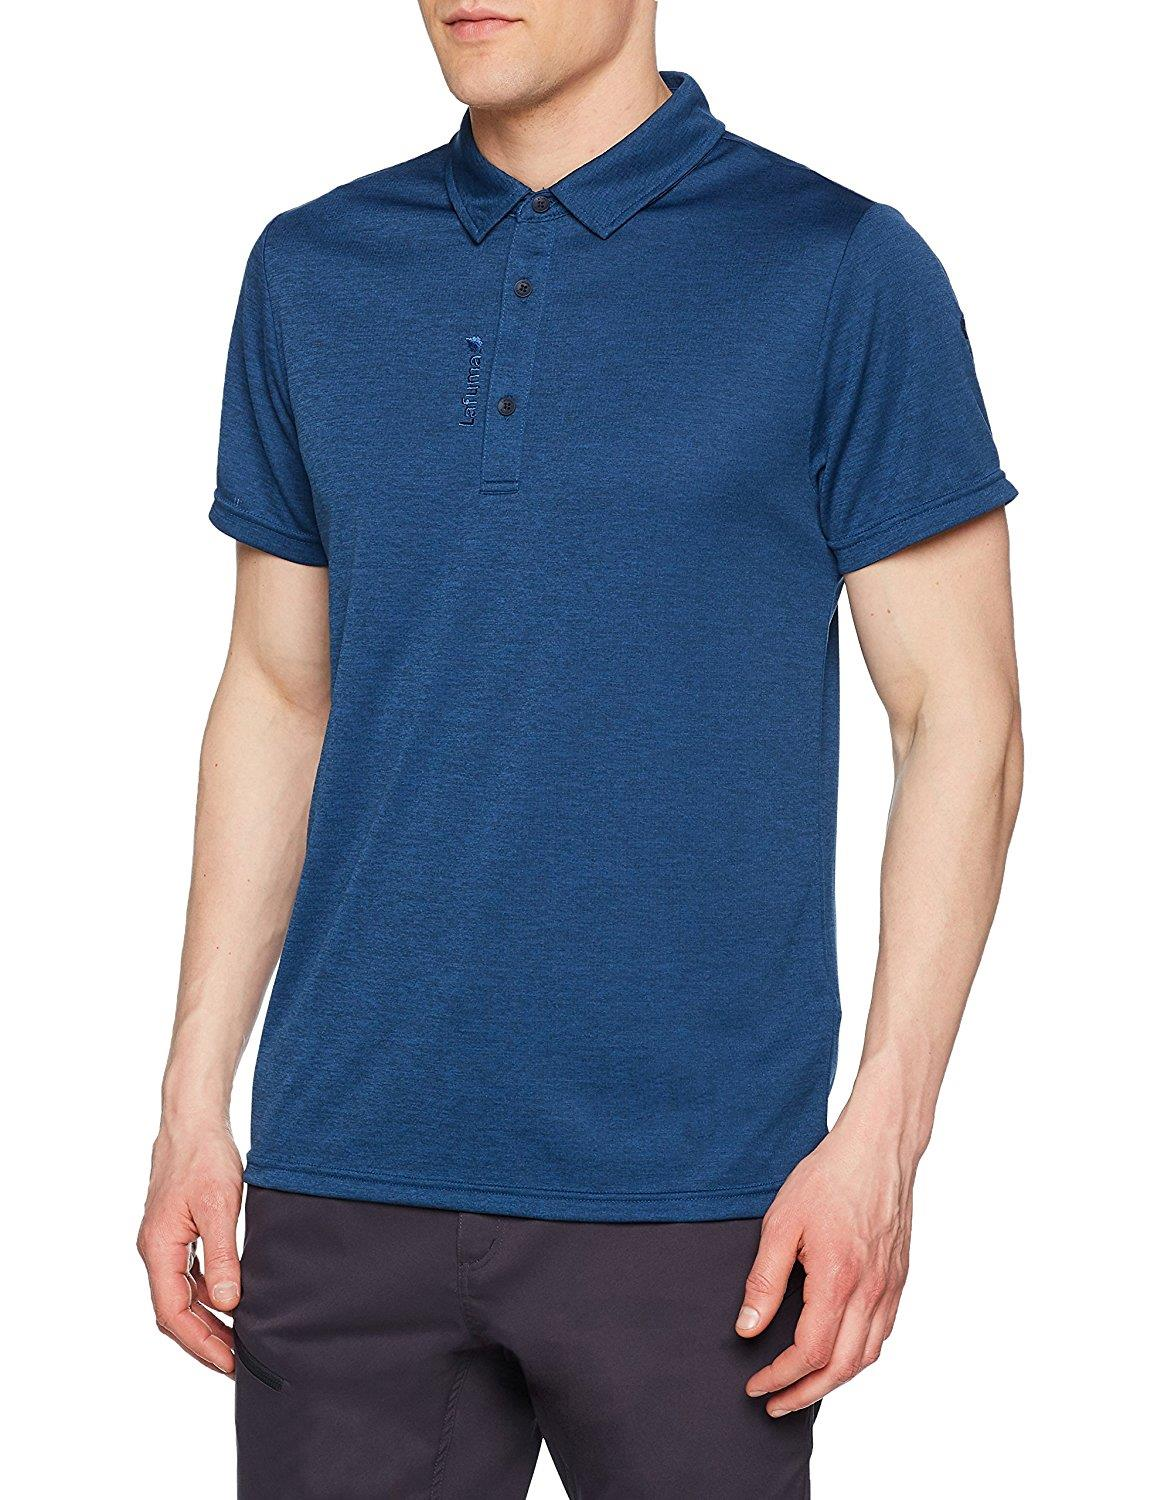 Lafuma Shift Polo Tshirt Lfv11459 5439